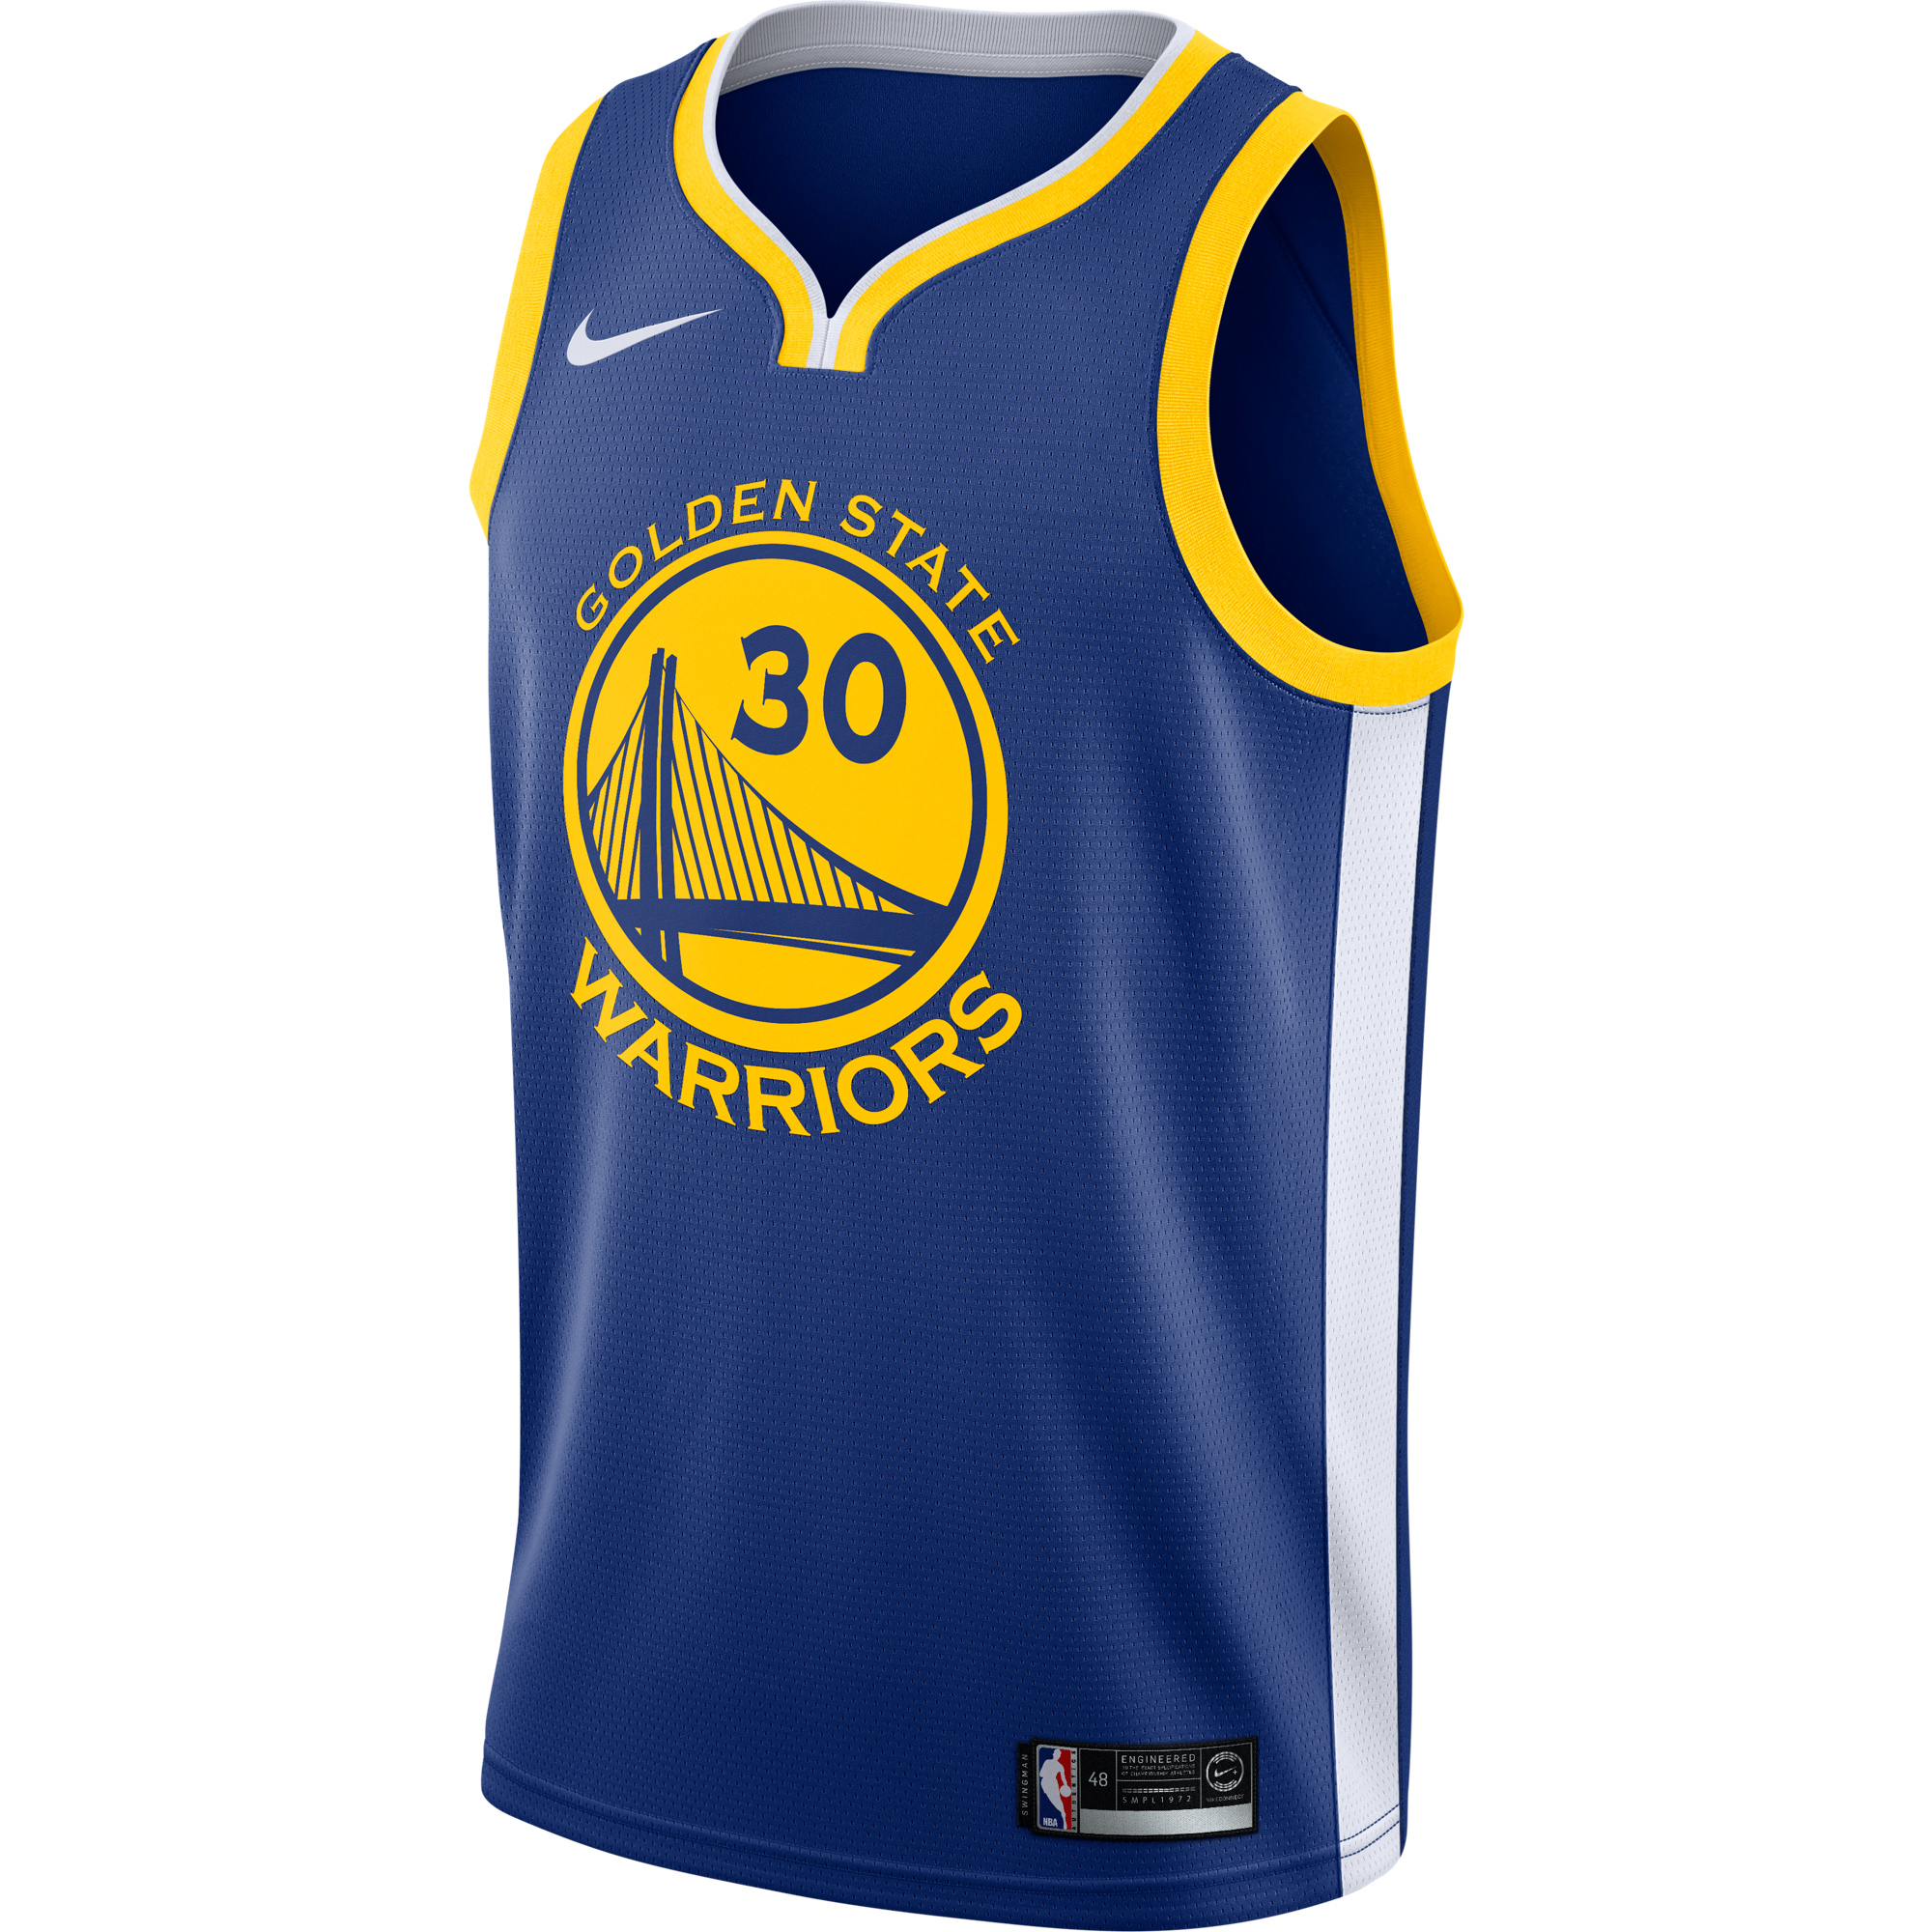 dea7e6eb Golden State Warriors Team Shop - Walmart.com